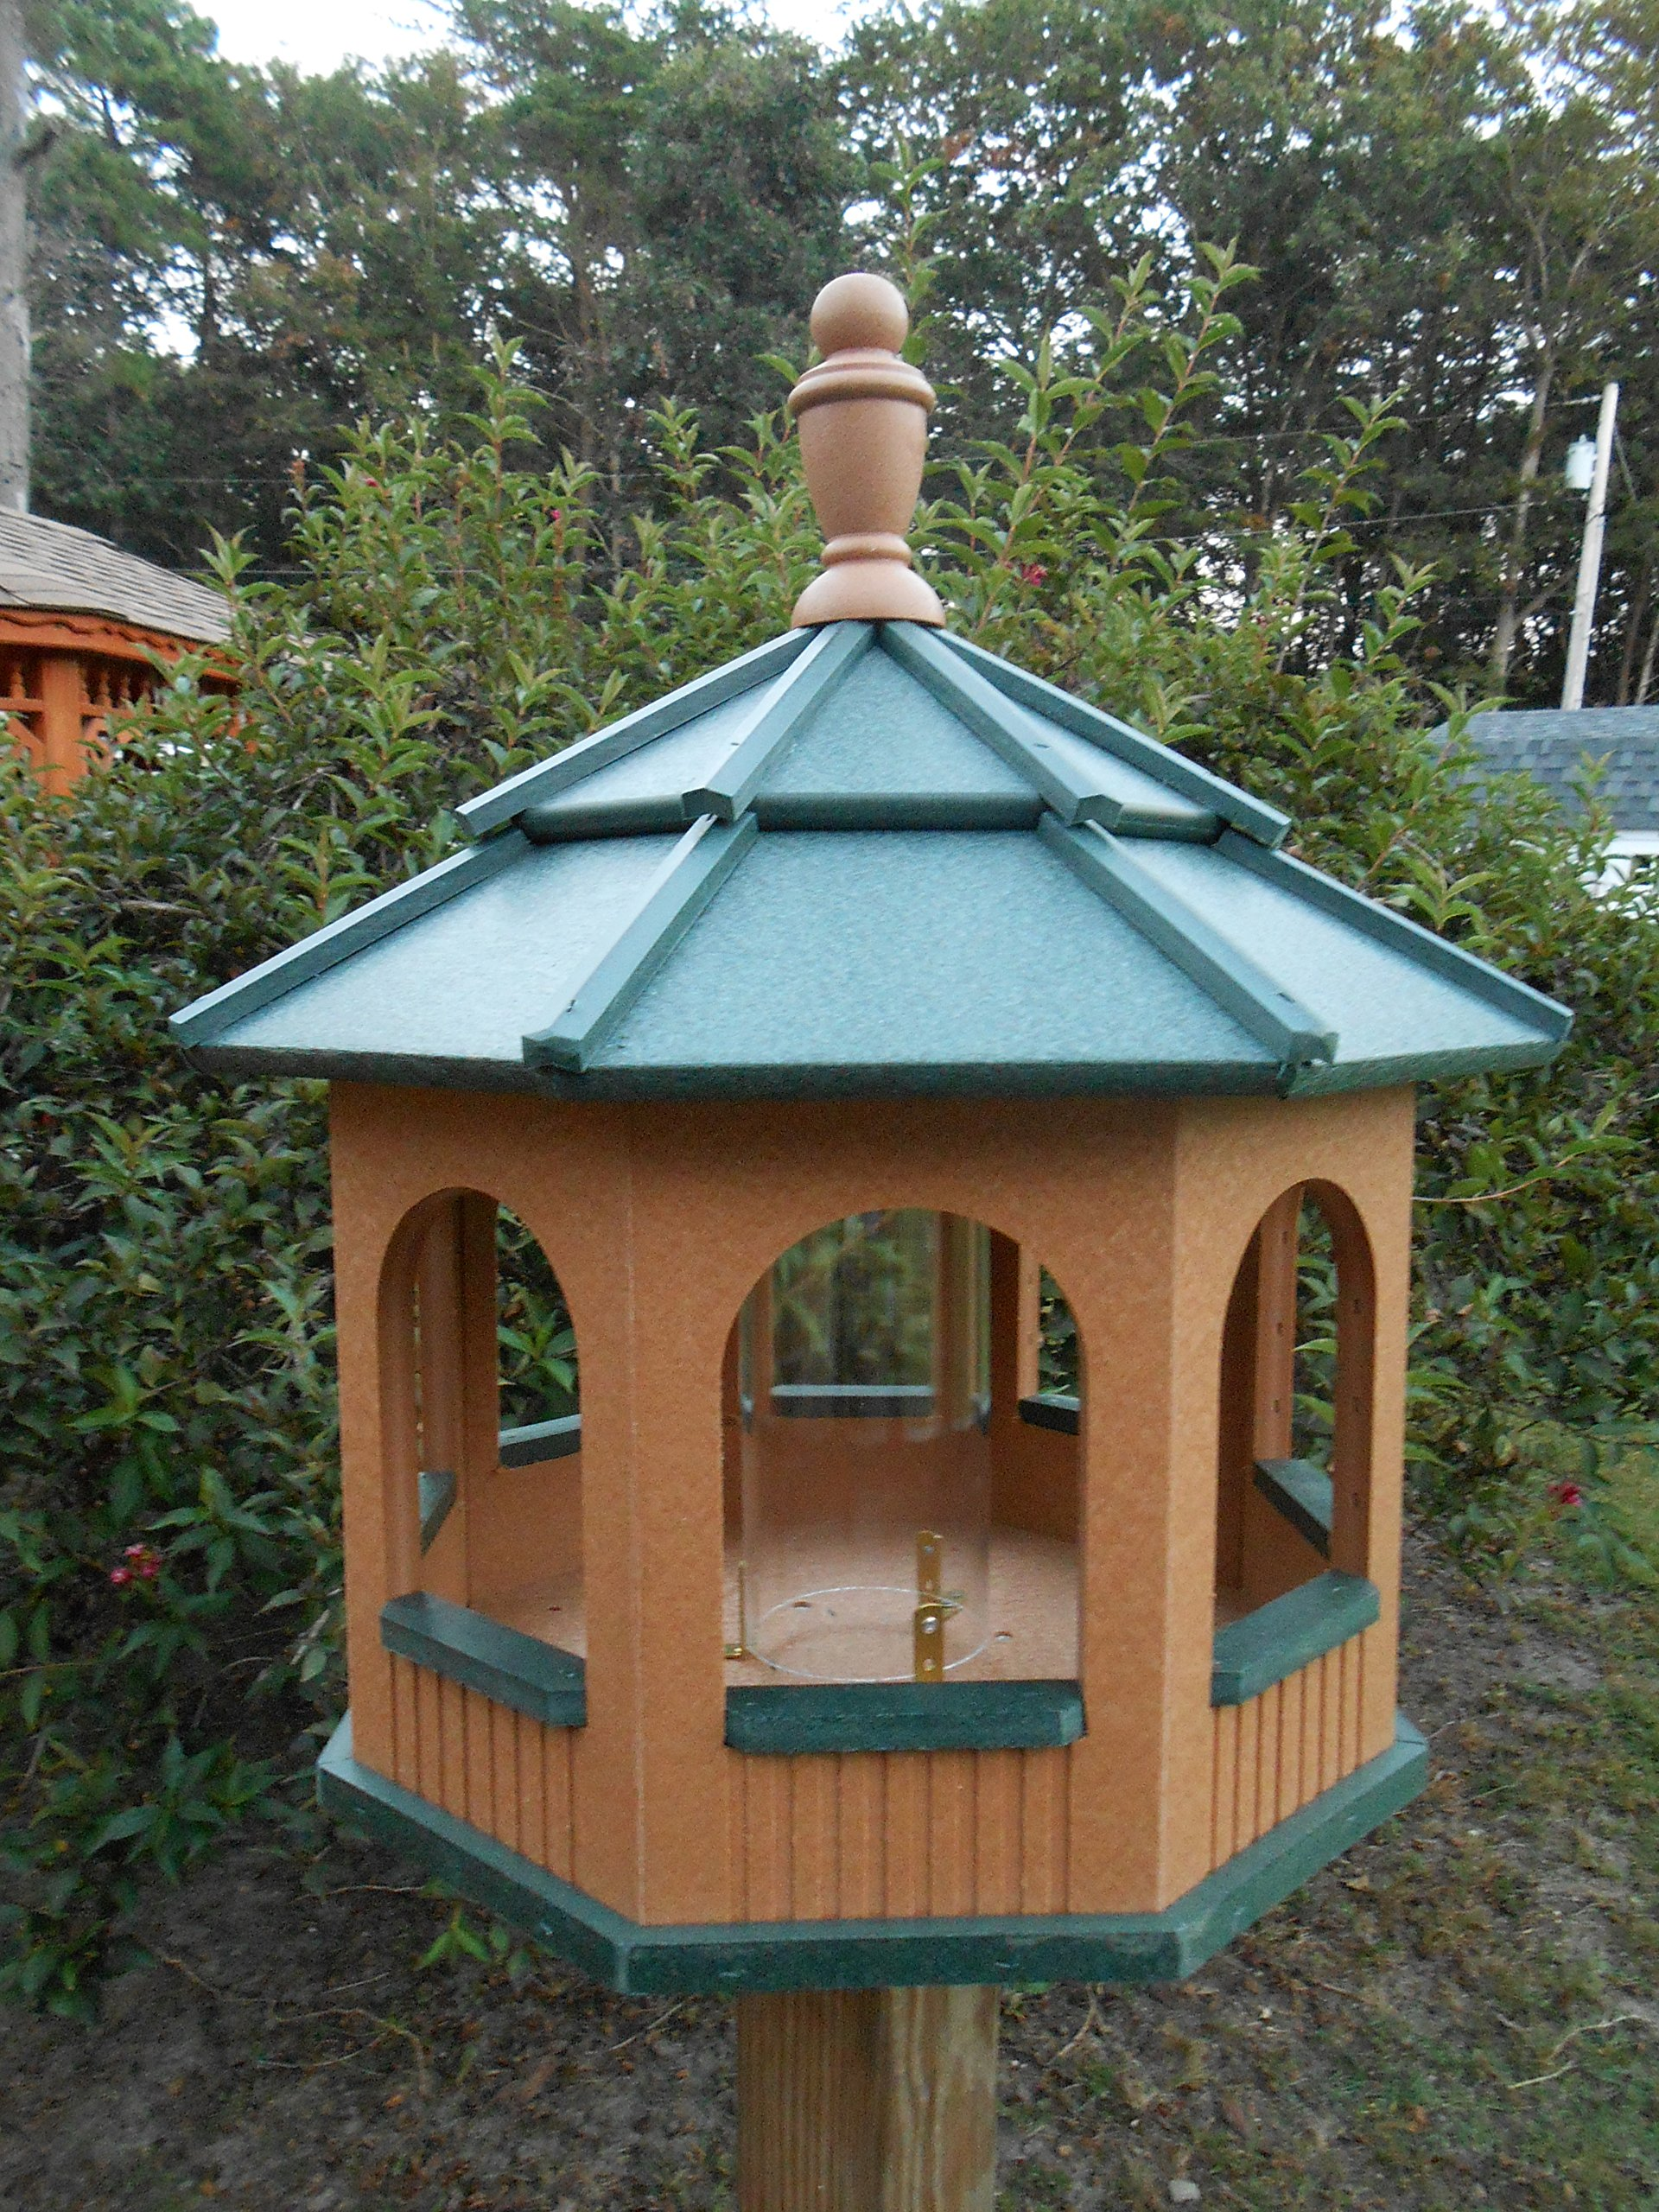 Large Gazebo Vinyl Bird Feeder Amish Homemade Handmade Handcrafted Cedar & Green by Amish Crafted